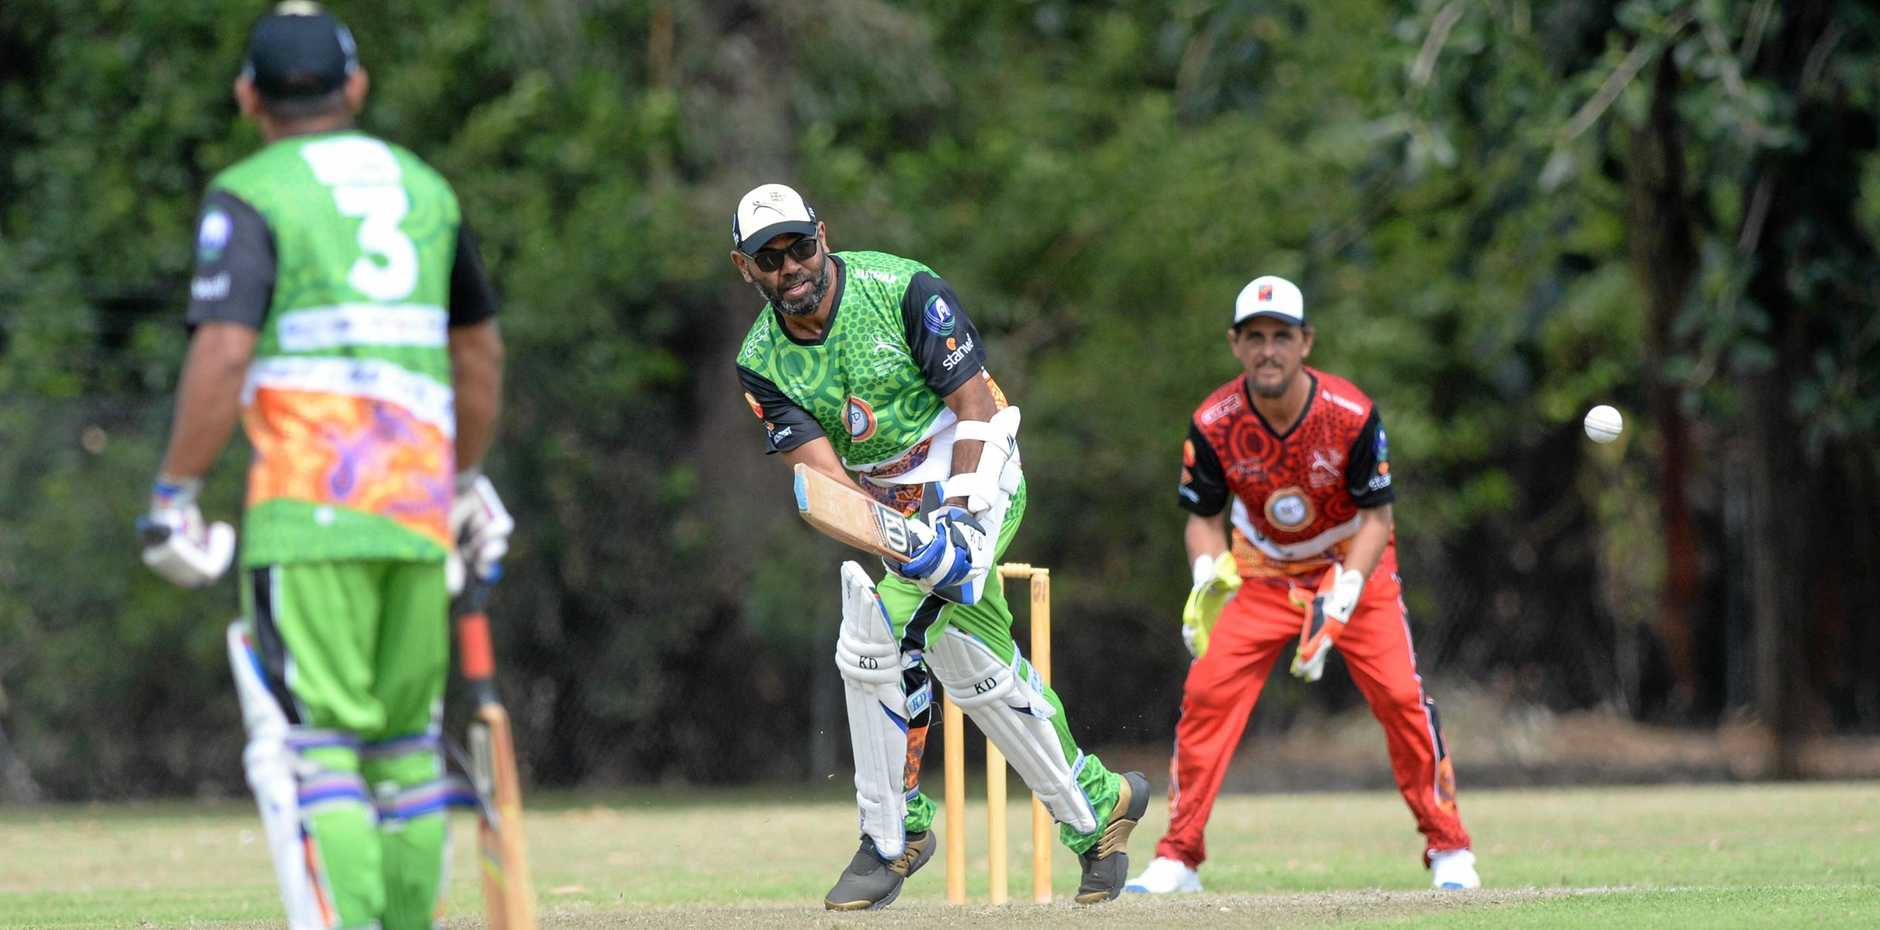 ON STRIKE: Buthar player Nyulang Savage hits out   against Renegades in the Stan Alberts Shield.